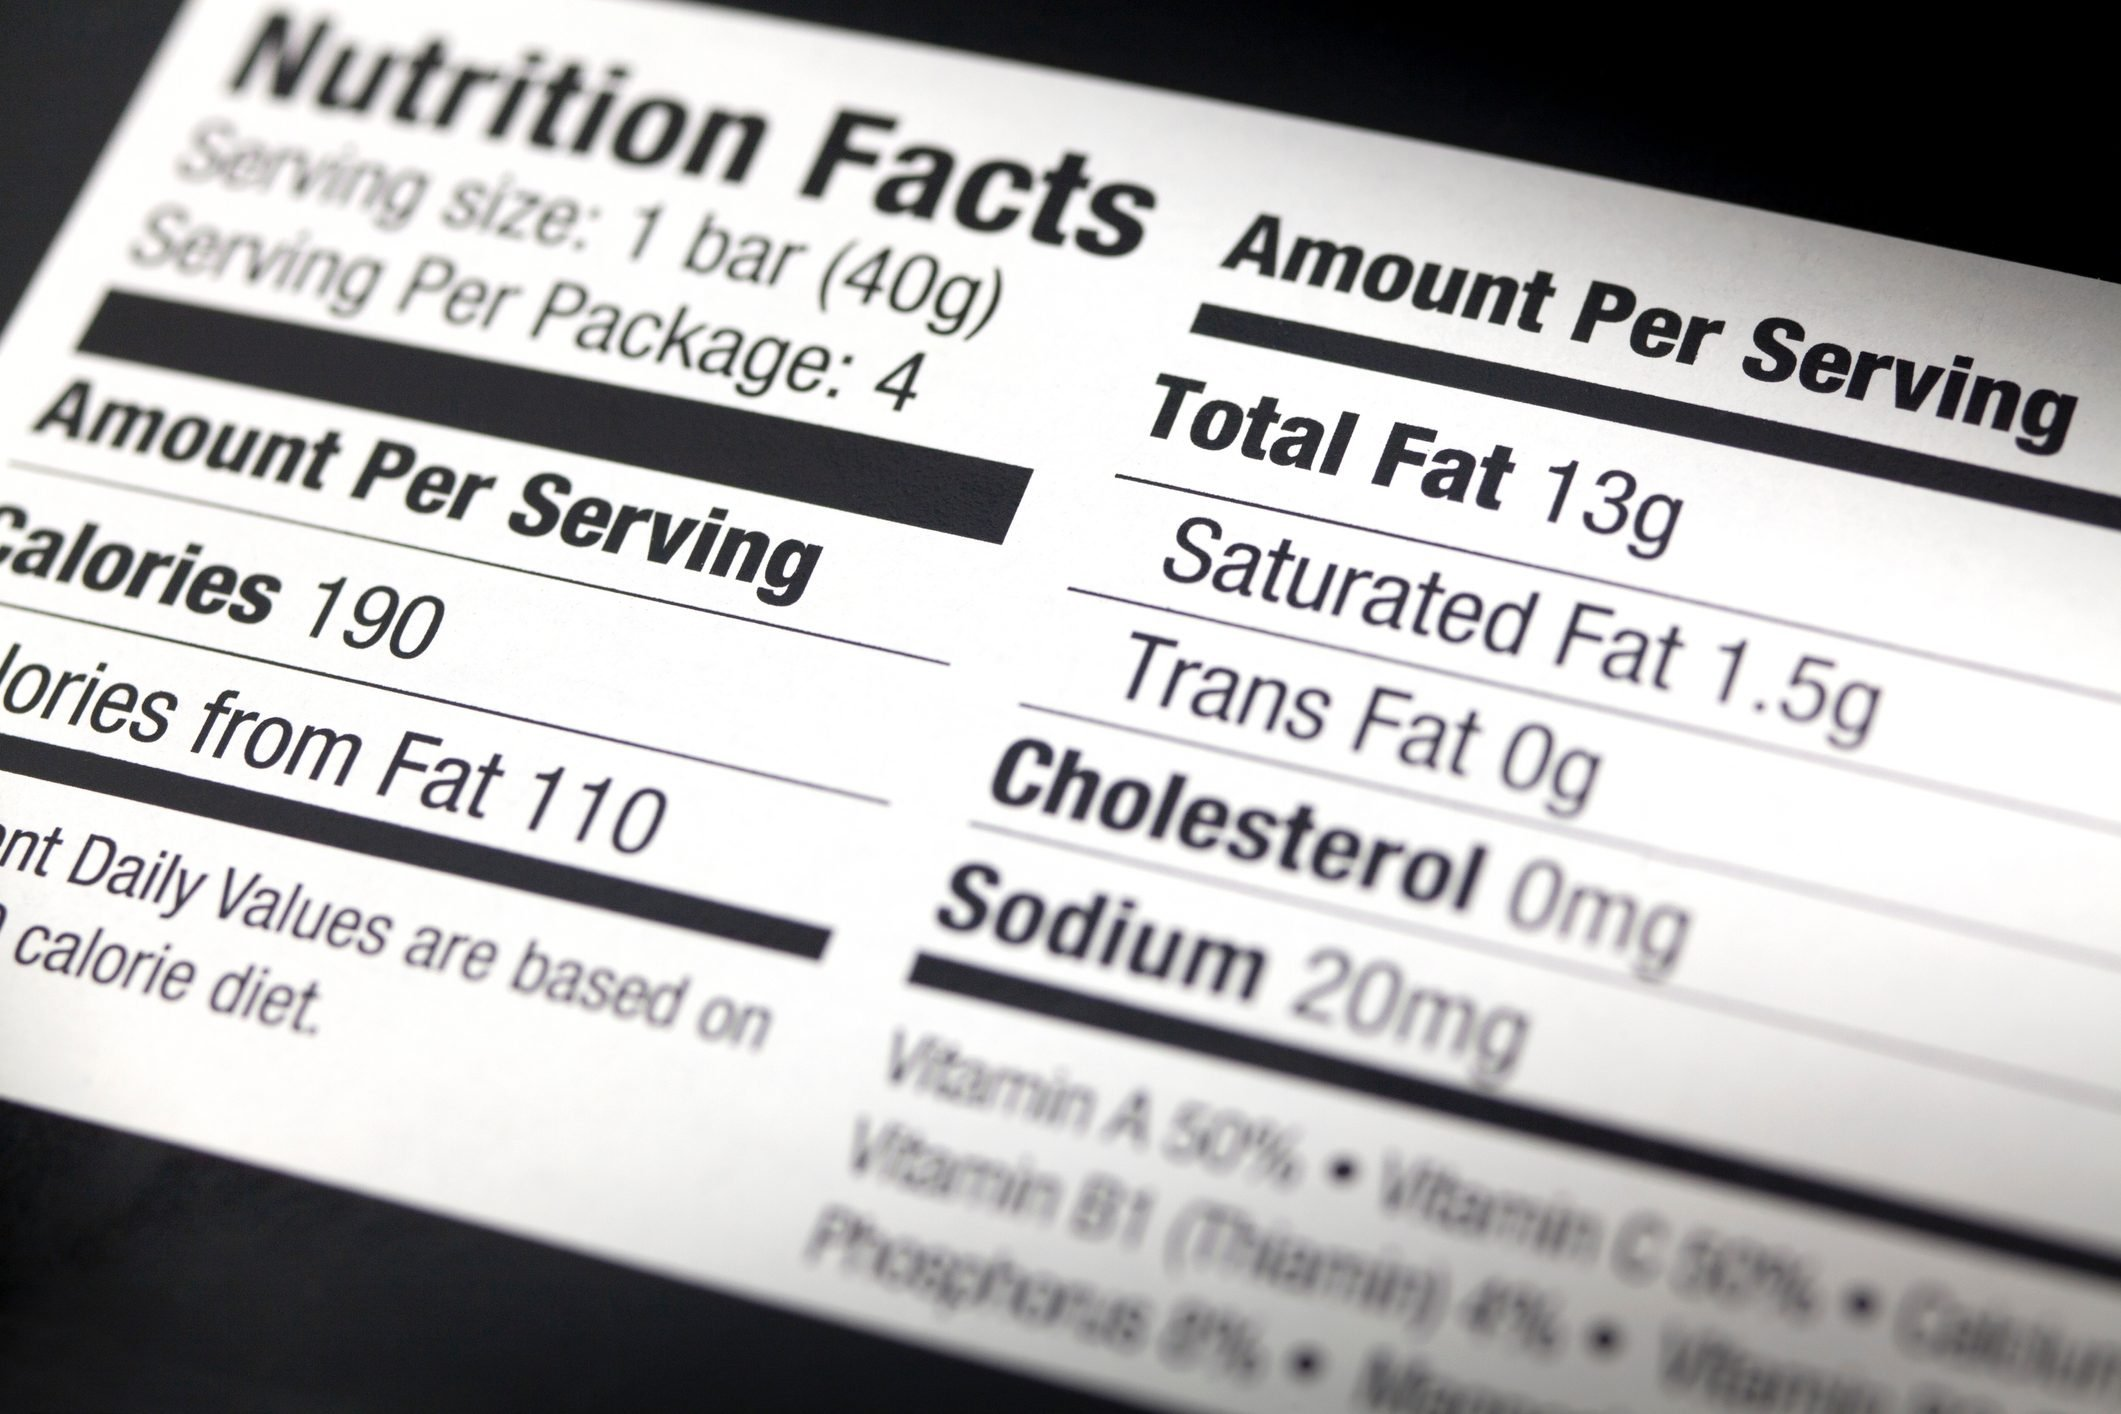 A nutritional label, close-up